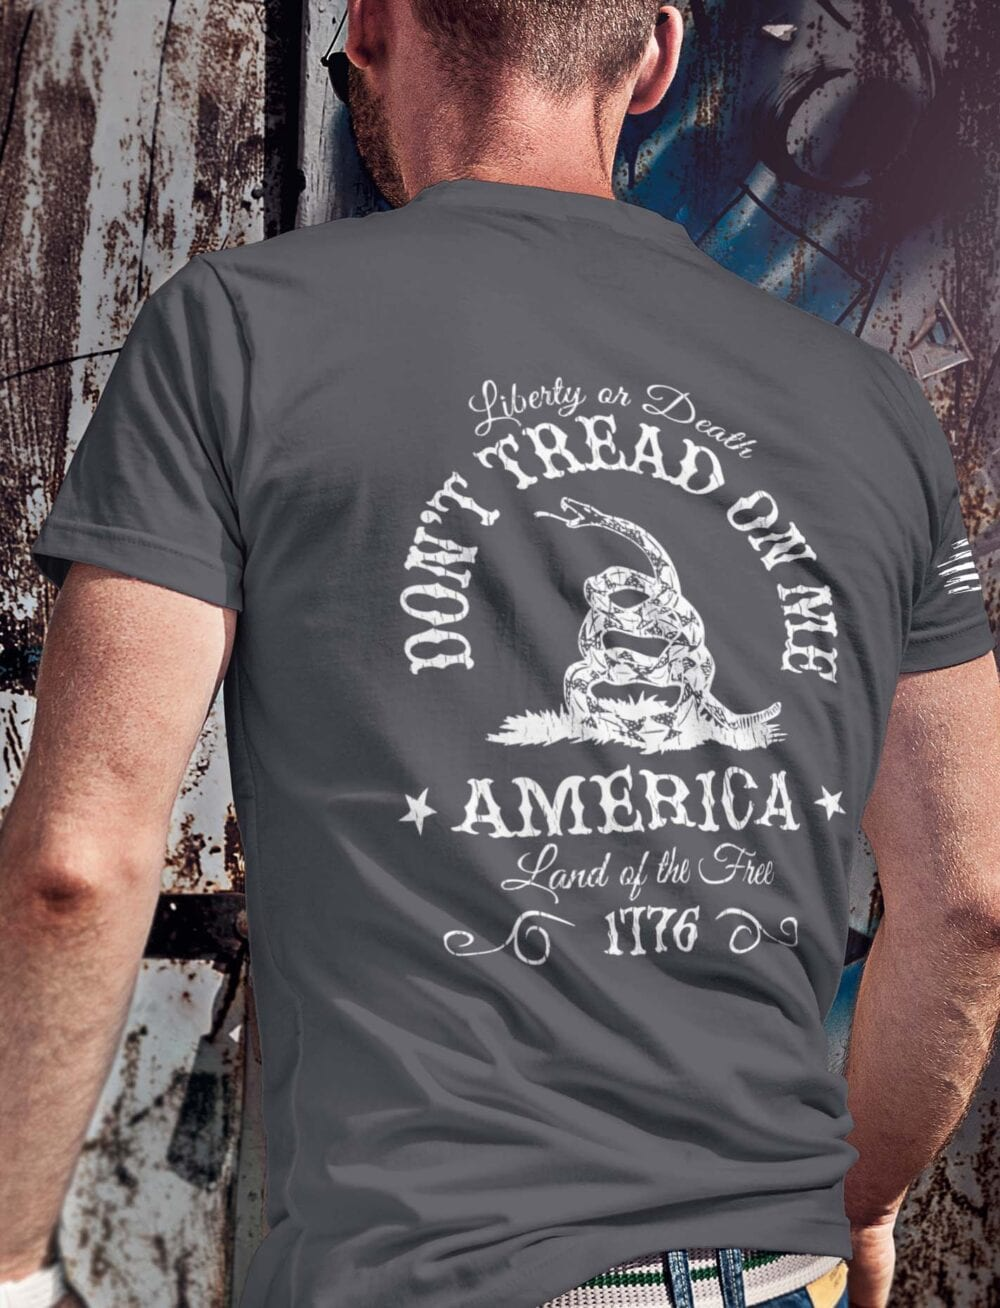 Don't Tread On Me on Men's Charcoal Grey T-Shirt